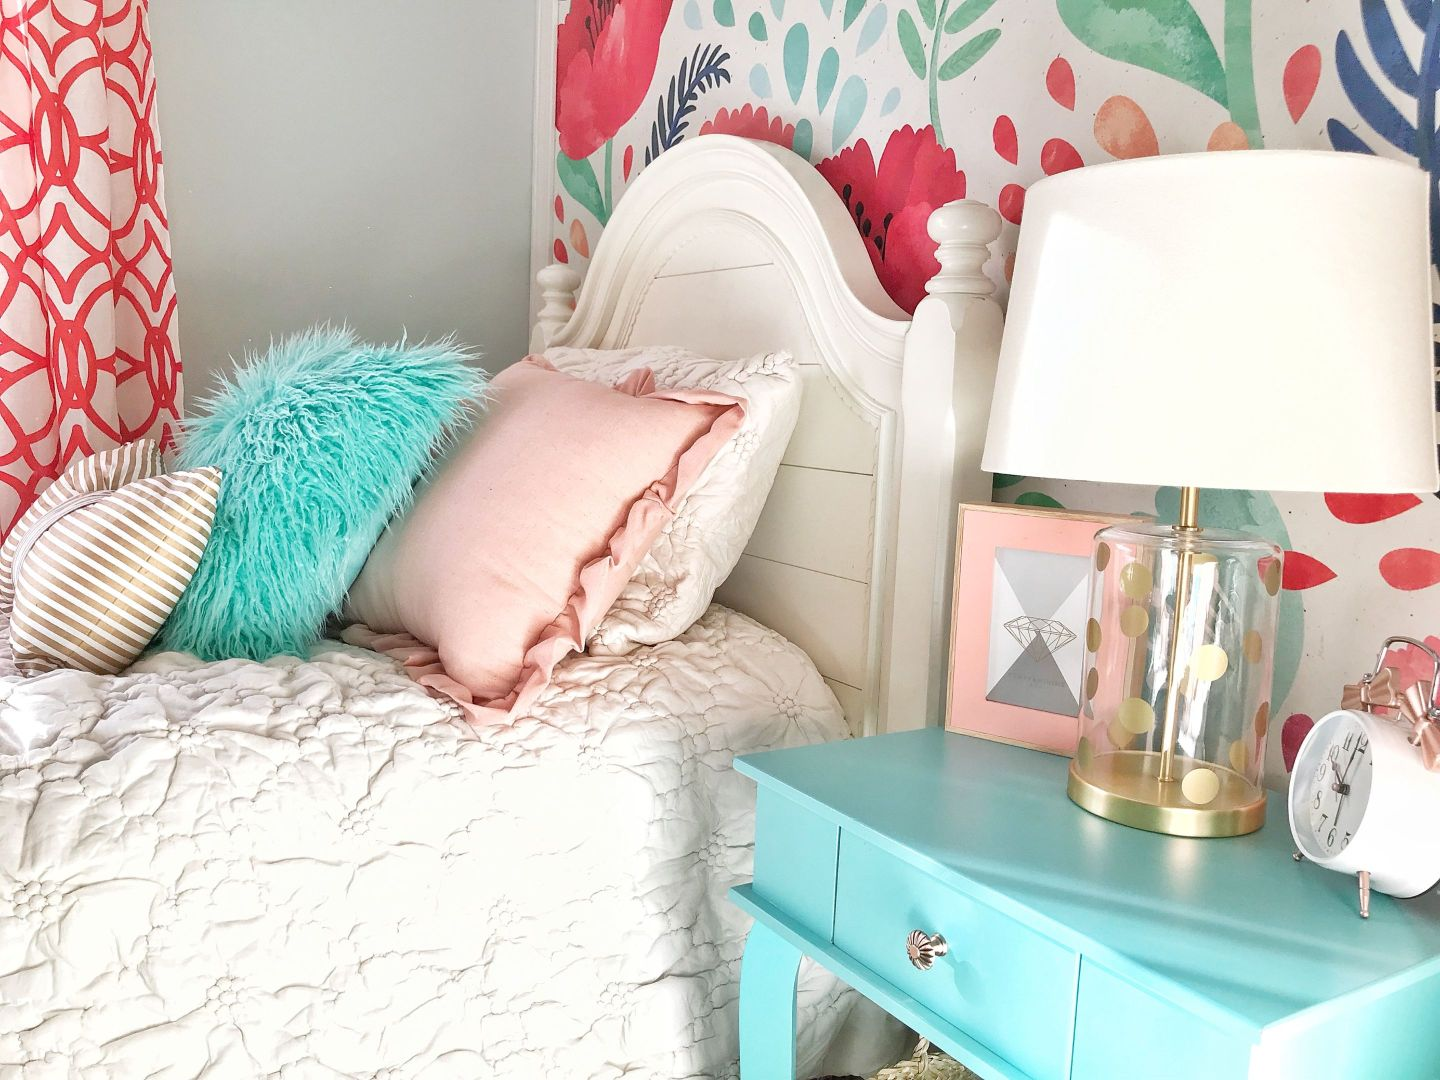 HPXCE8770-1440x1080 3 Tips on How to Decorate a Southern Girl's Room